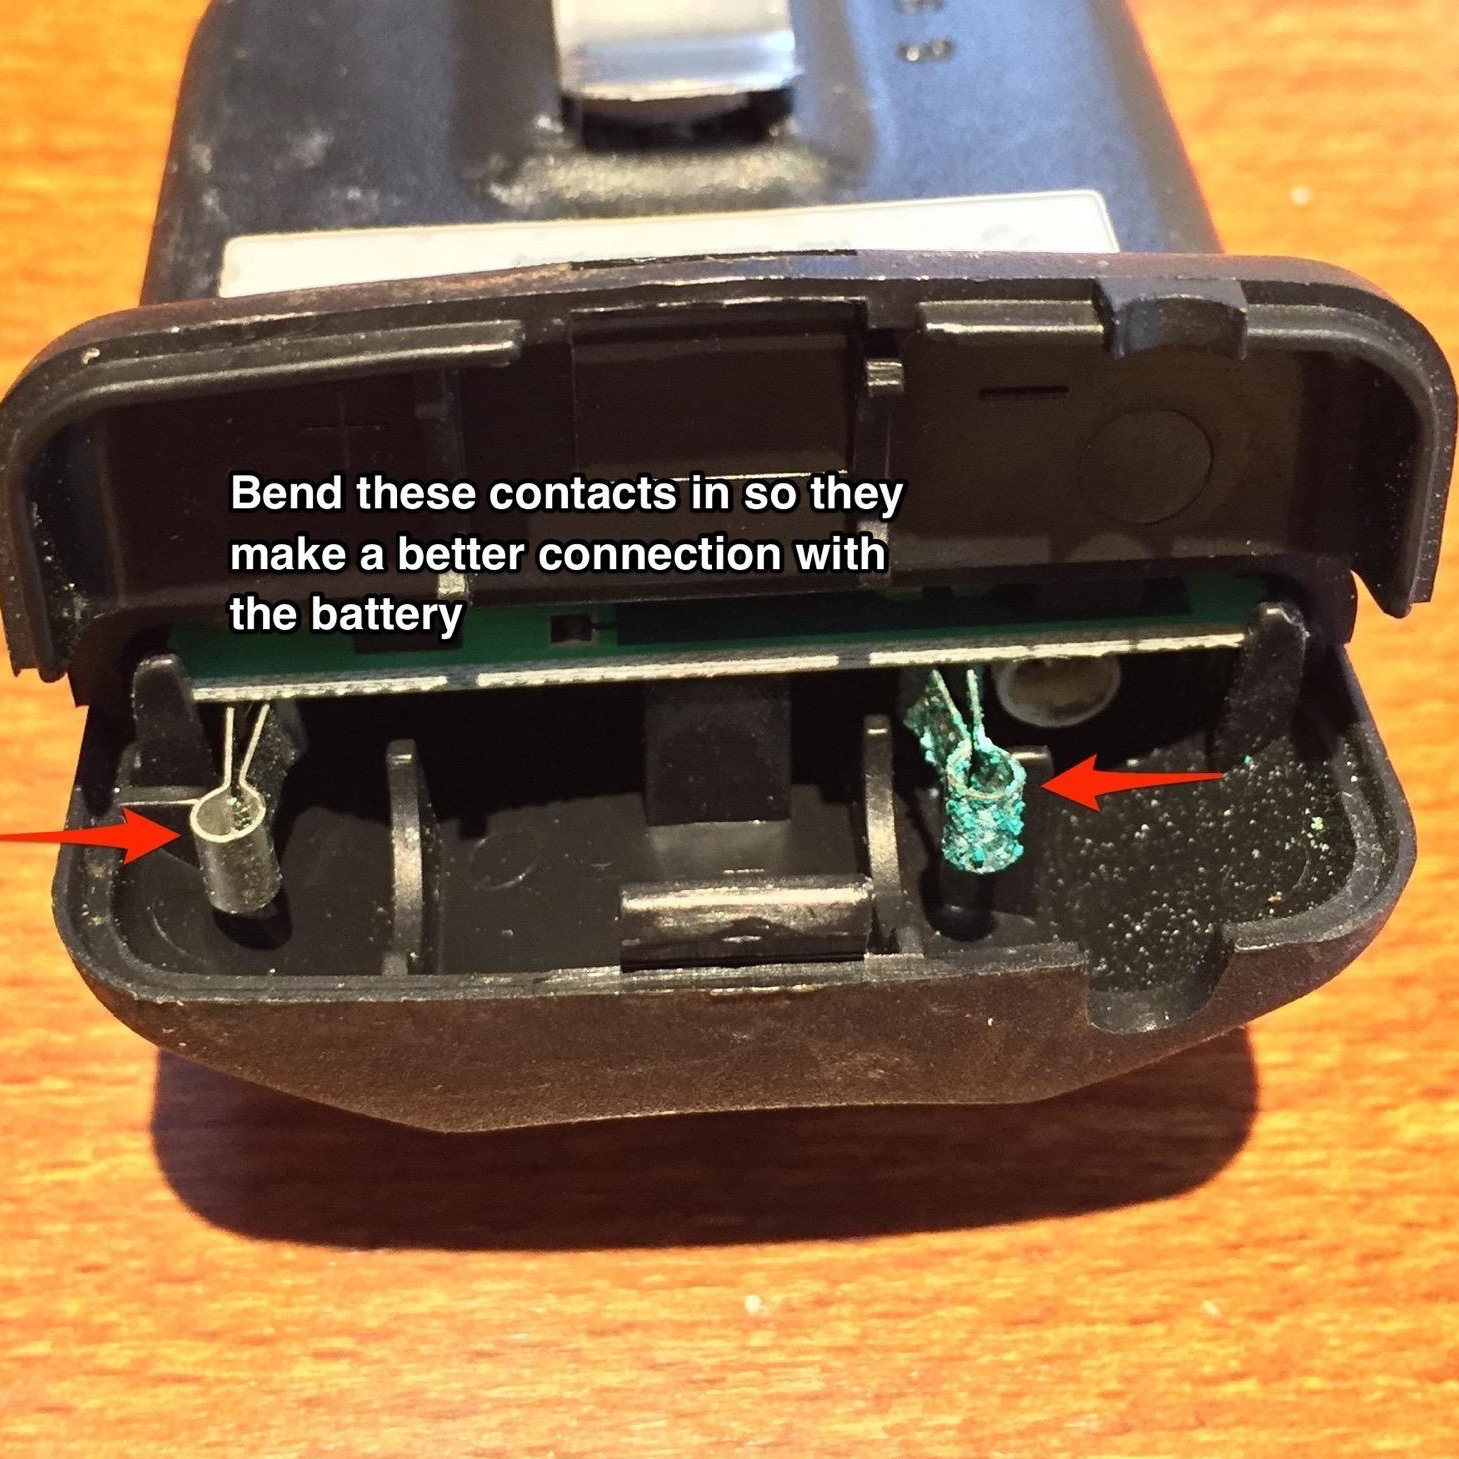 Bend these contacts in so they make a better connection with the battery